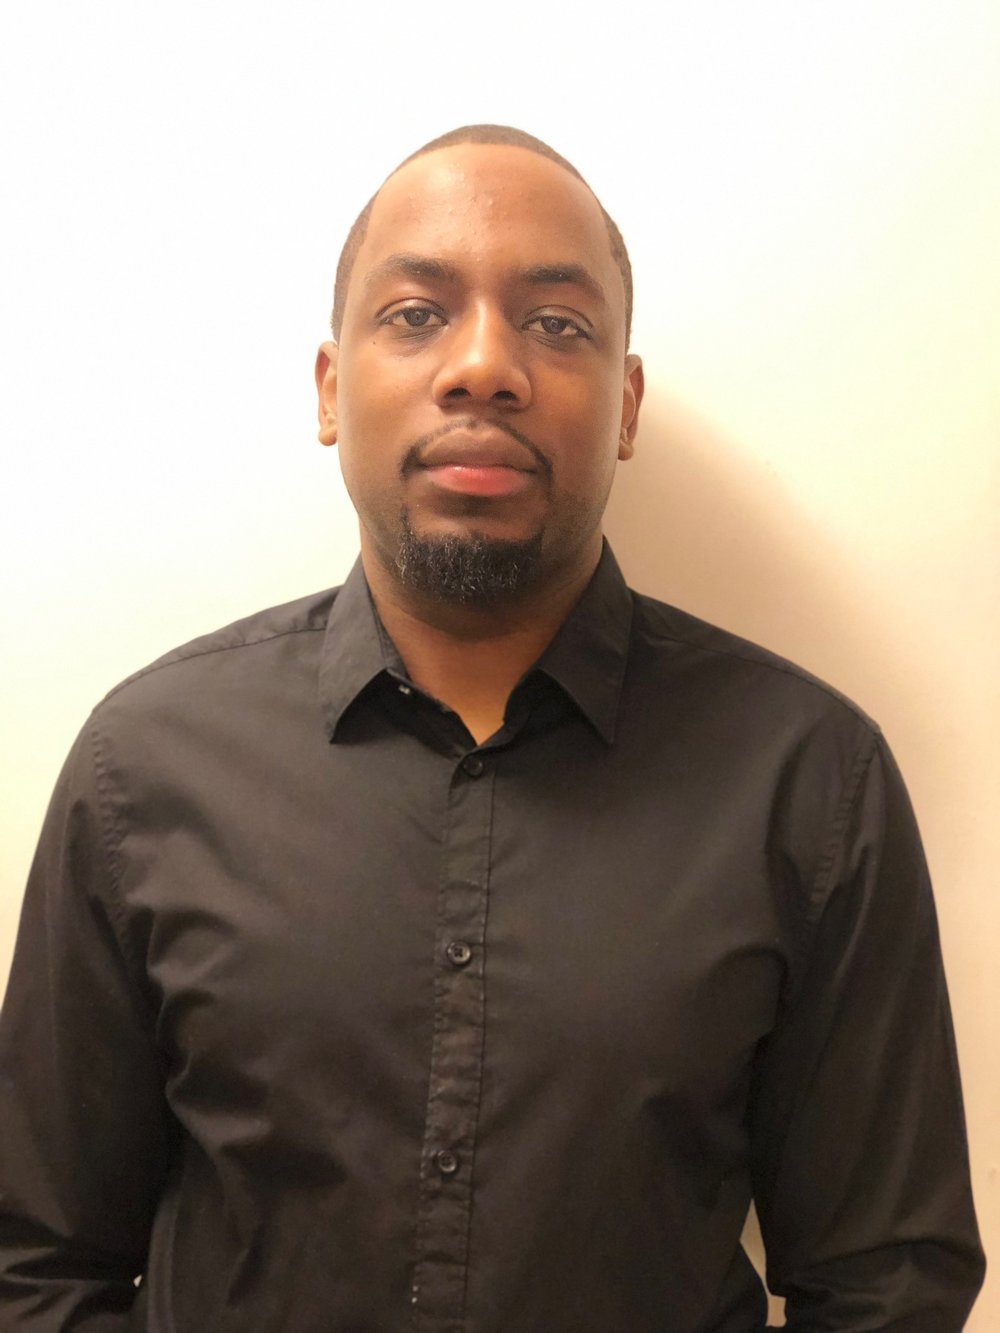 Travis Simms  Associate Degree in Communications from Kingsborough Community College, Correction Officer for New York City Department of Corrections